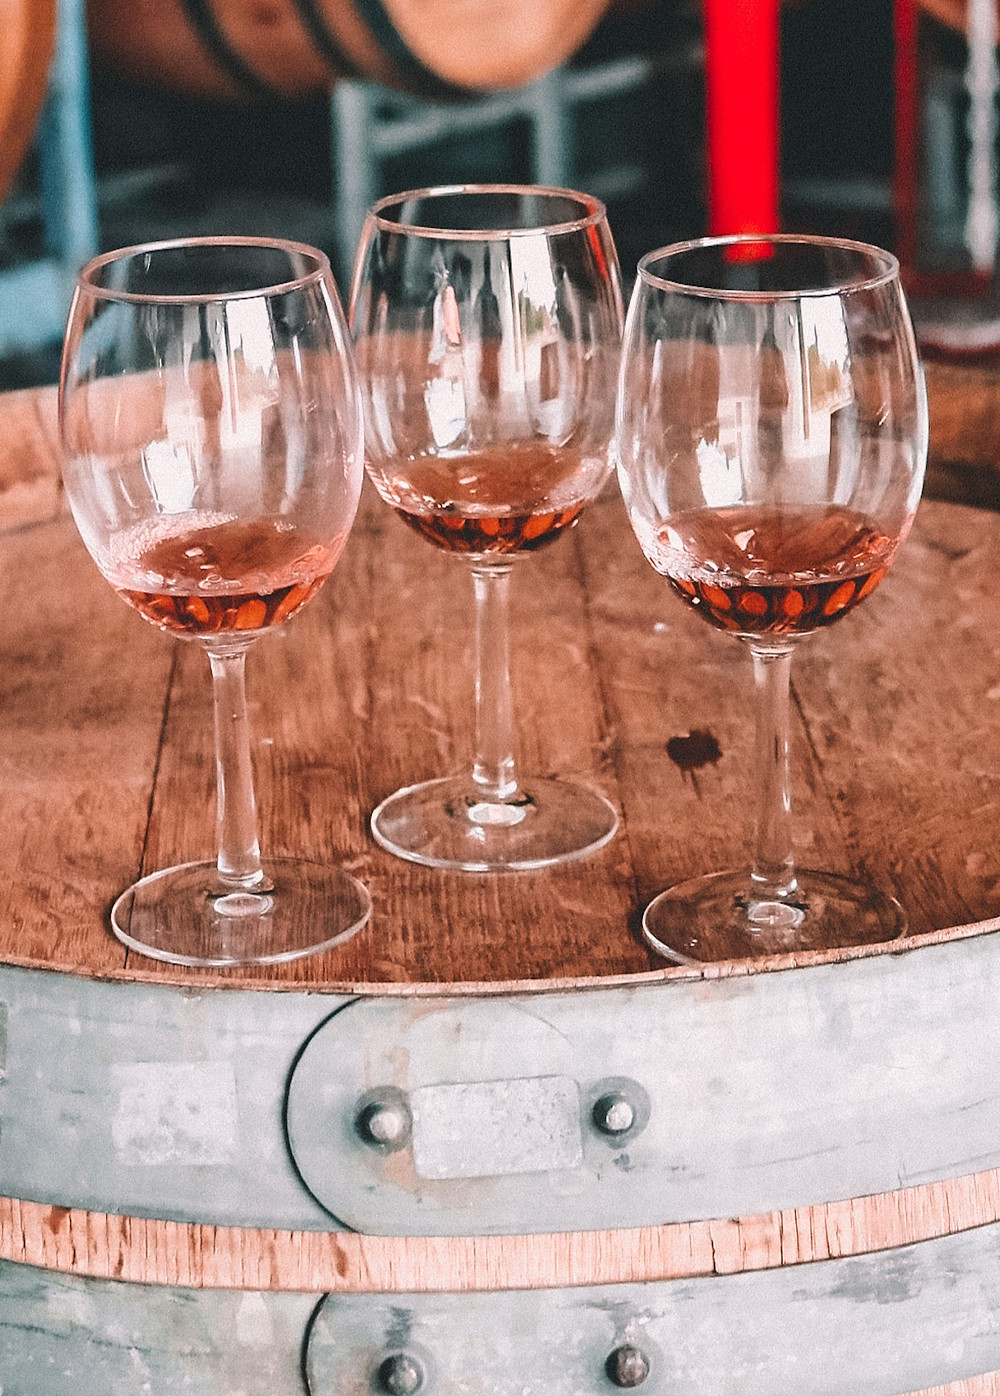 Summer rosé wine at a winery on a wine barrell